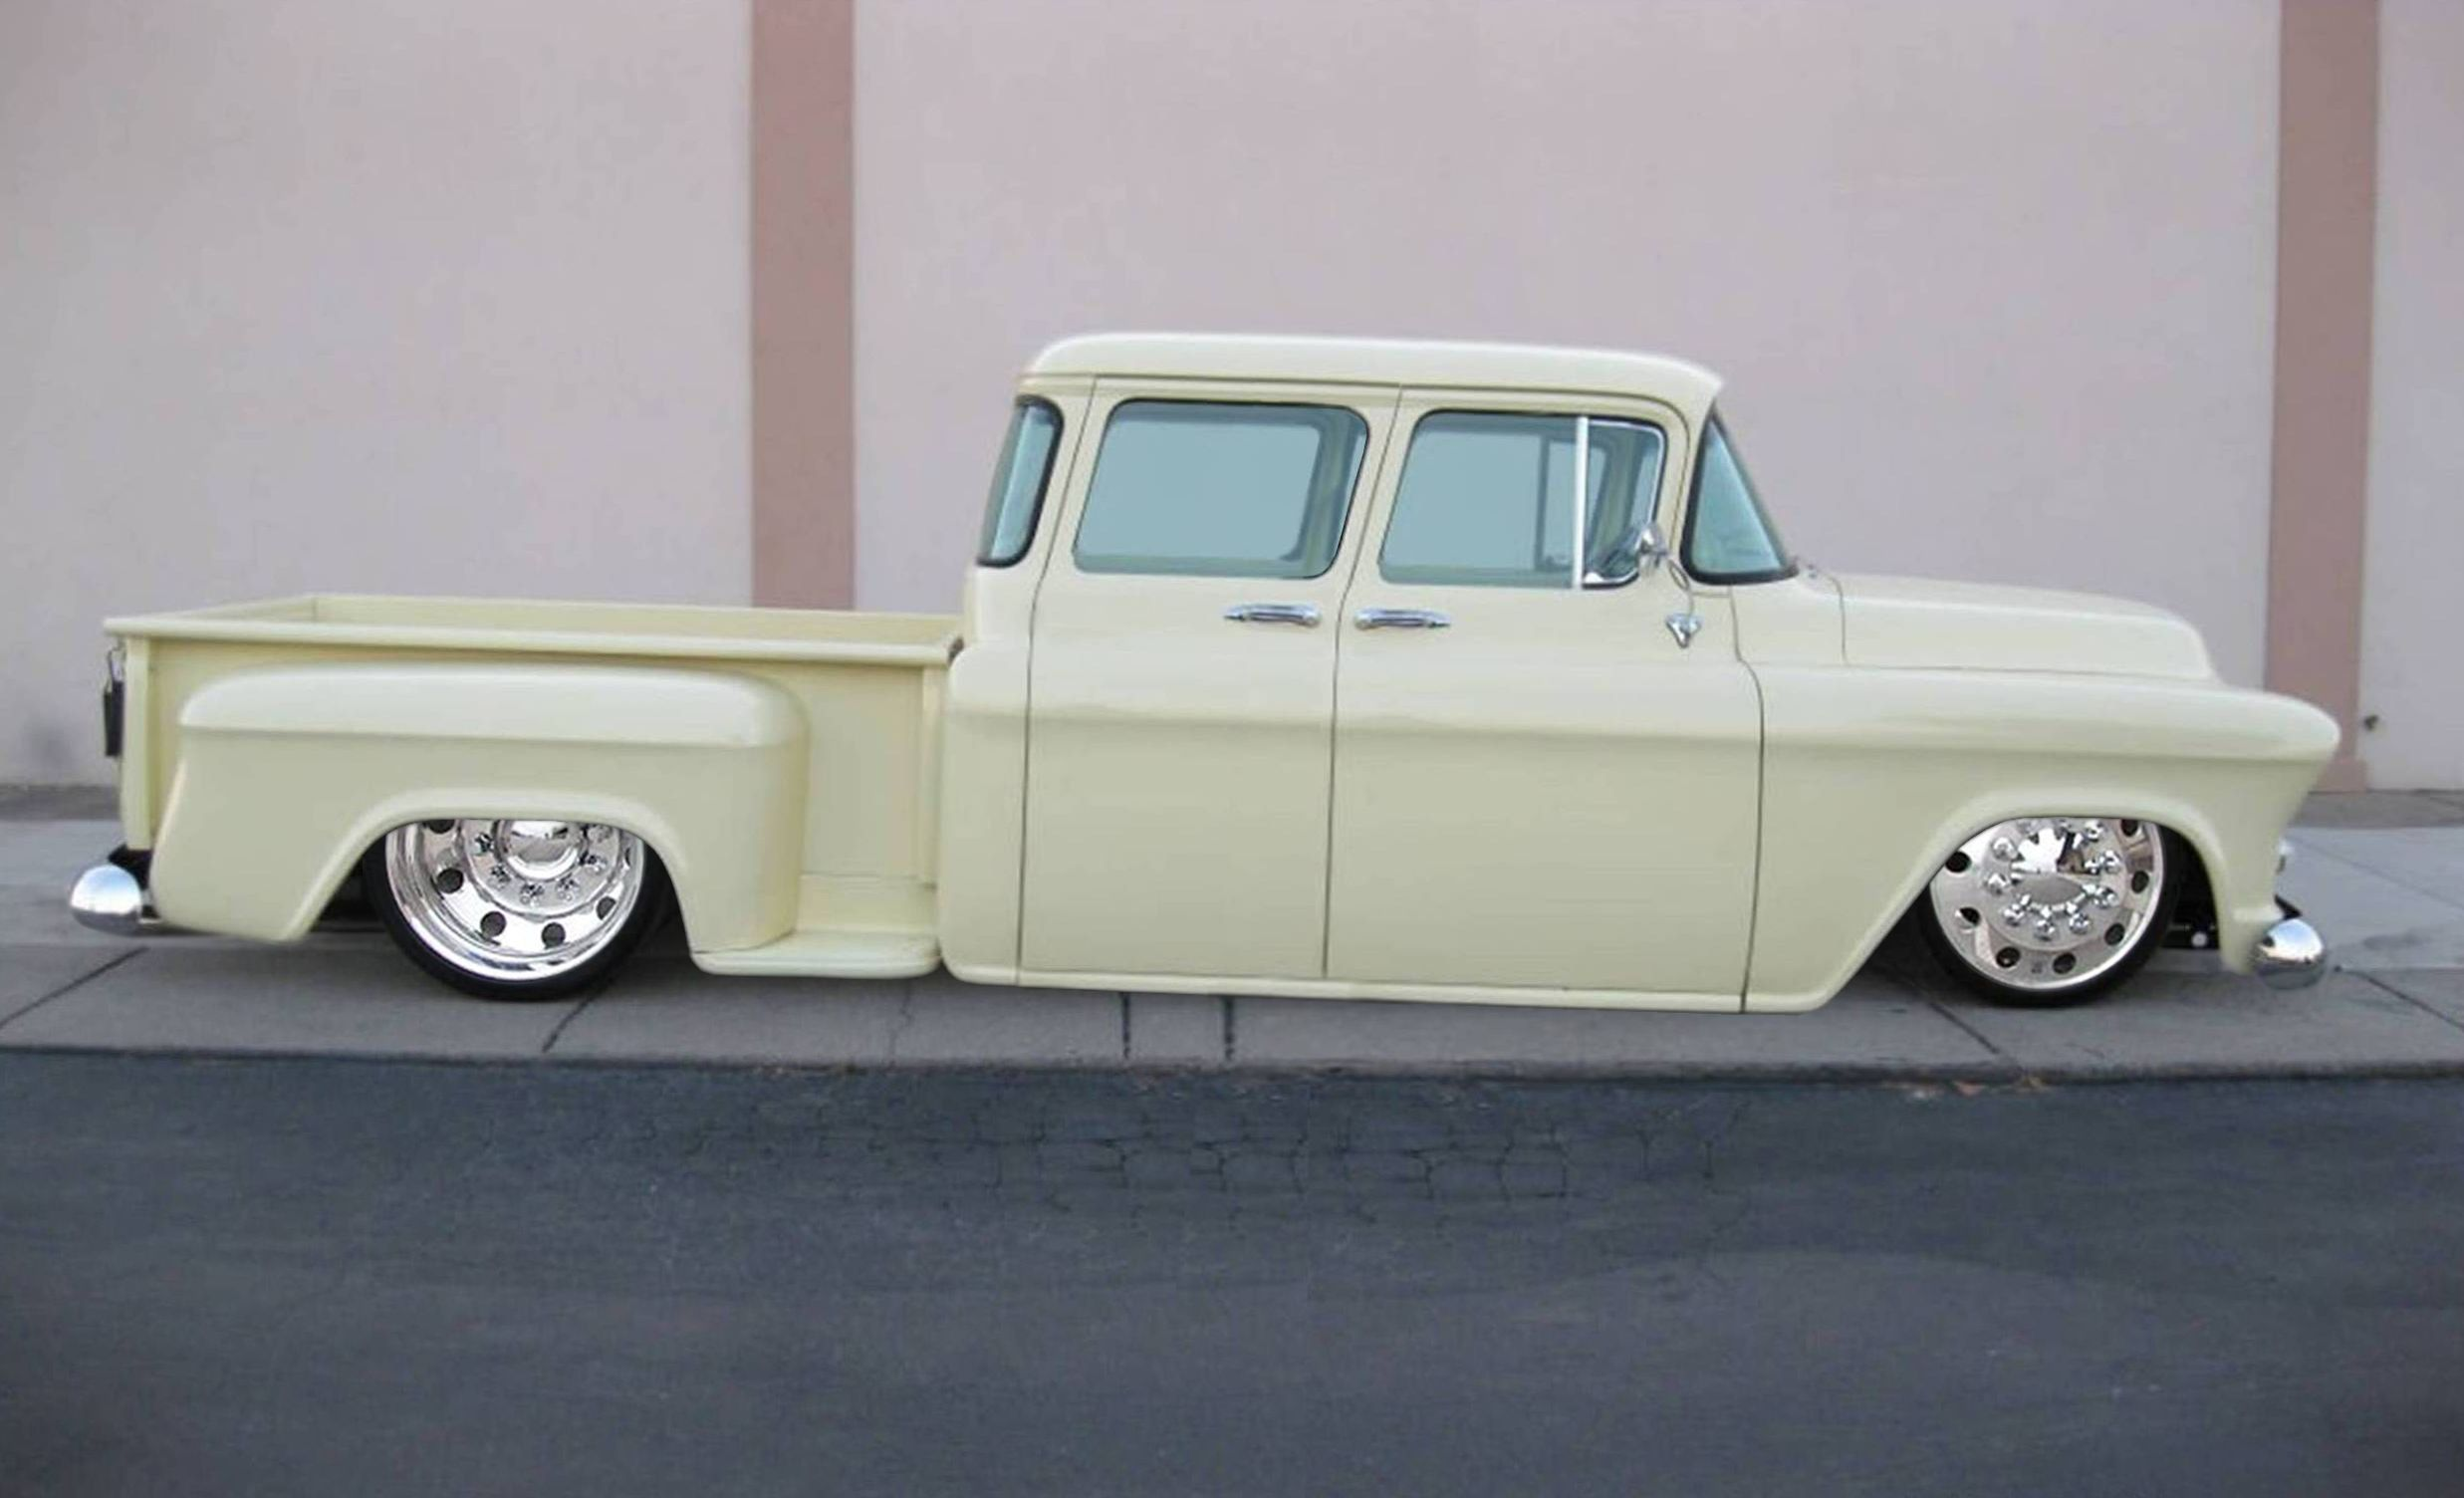 1955 chevy truck car clubs autos post - Custom Crew Cab Discussion The 1947 Present Chevrolet Gmc Truck Message Board Network American Iron Pinterest Gmc Trucks Message Board And